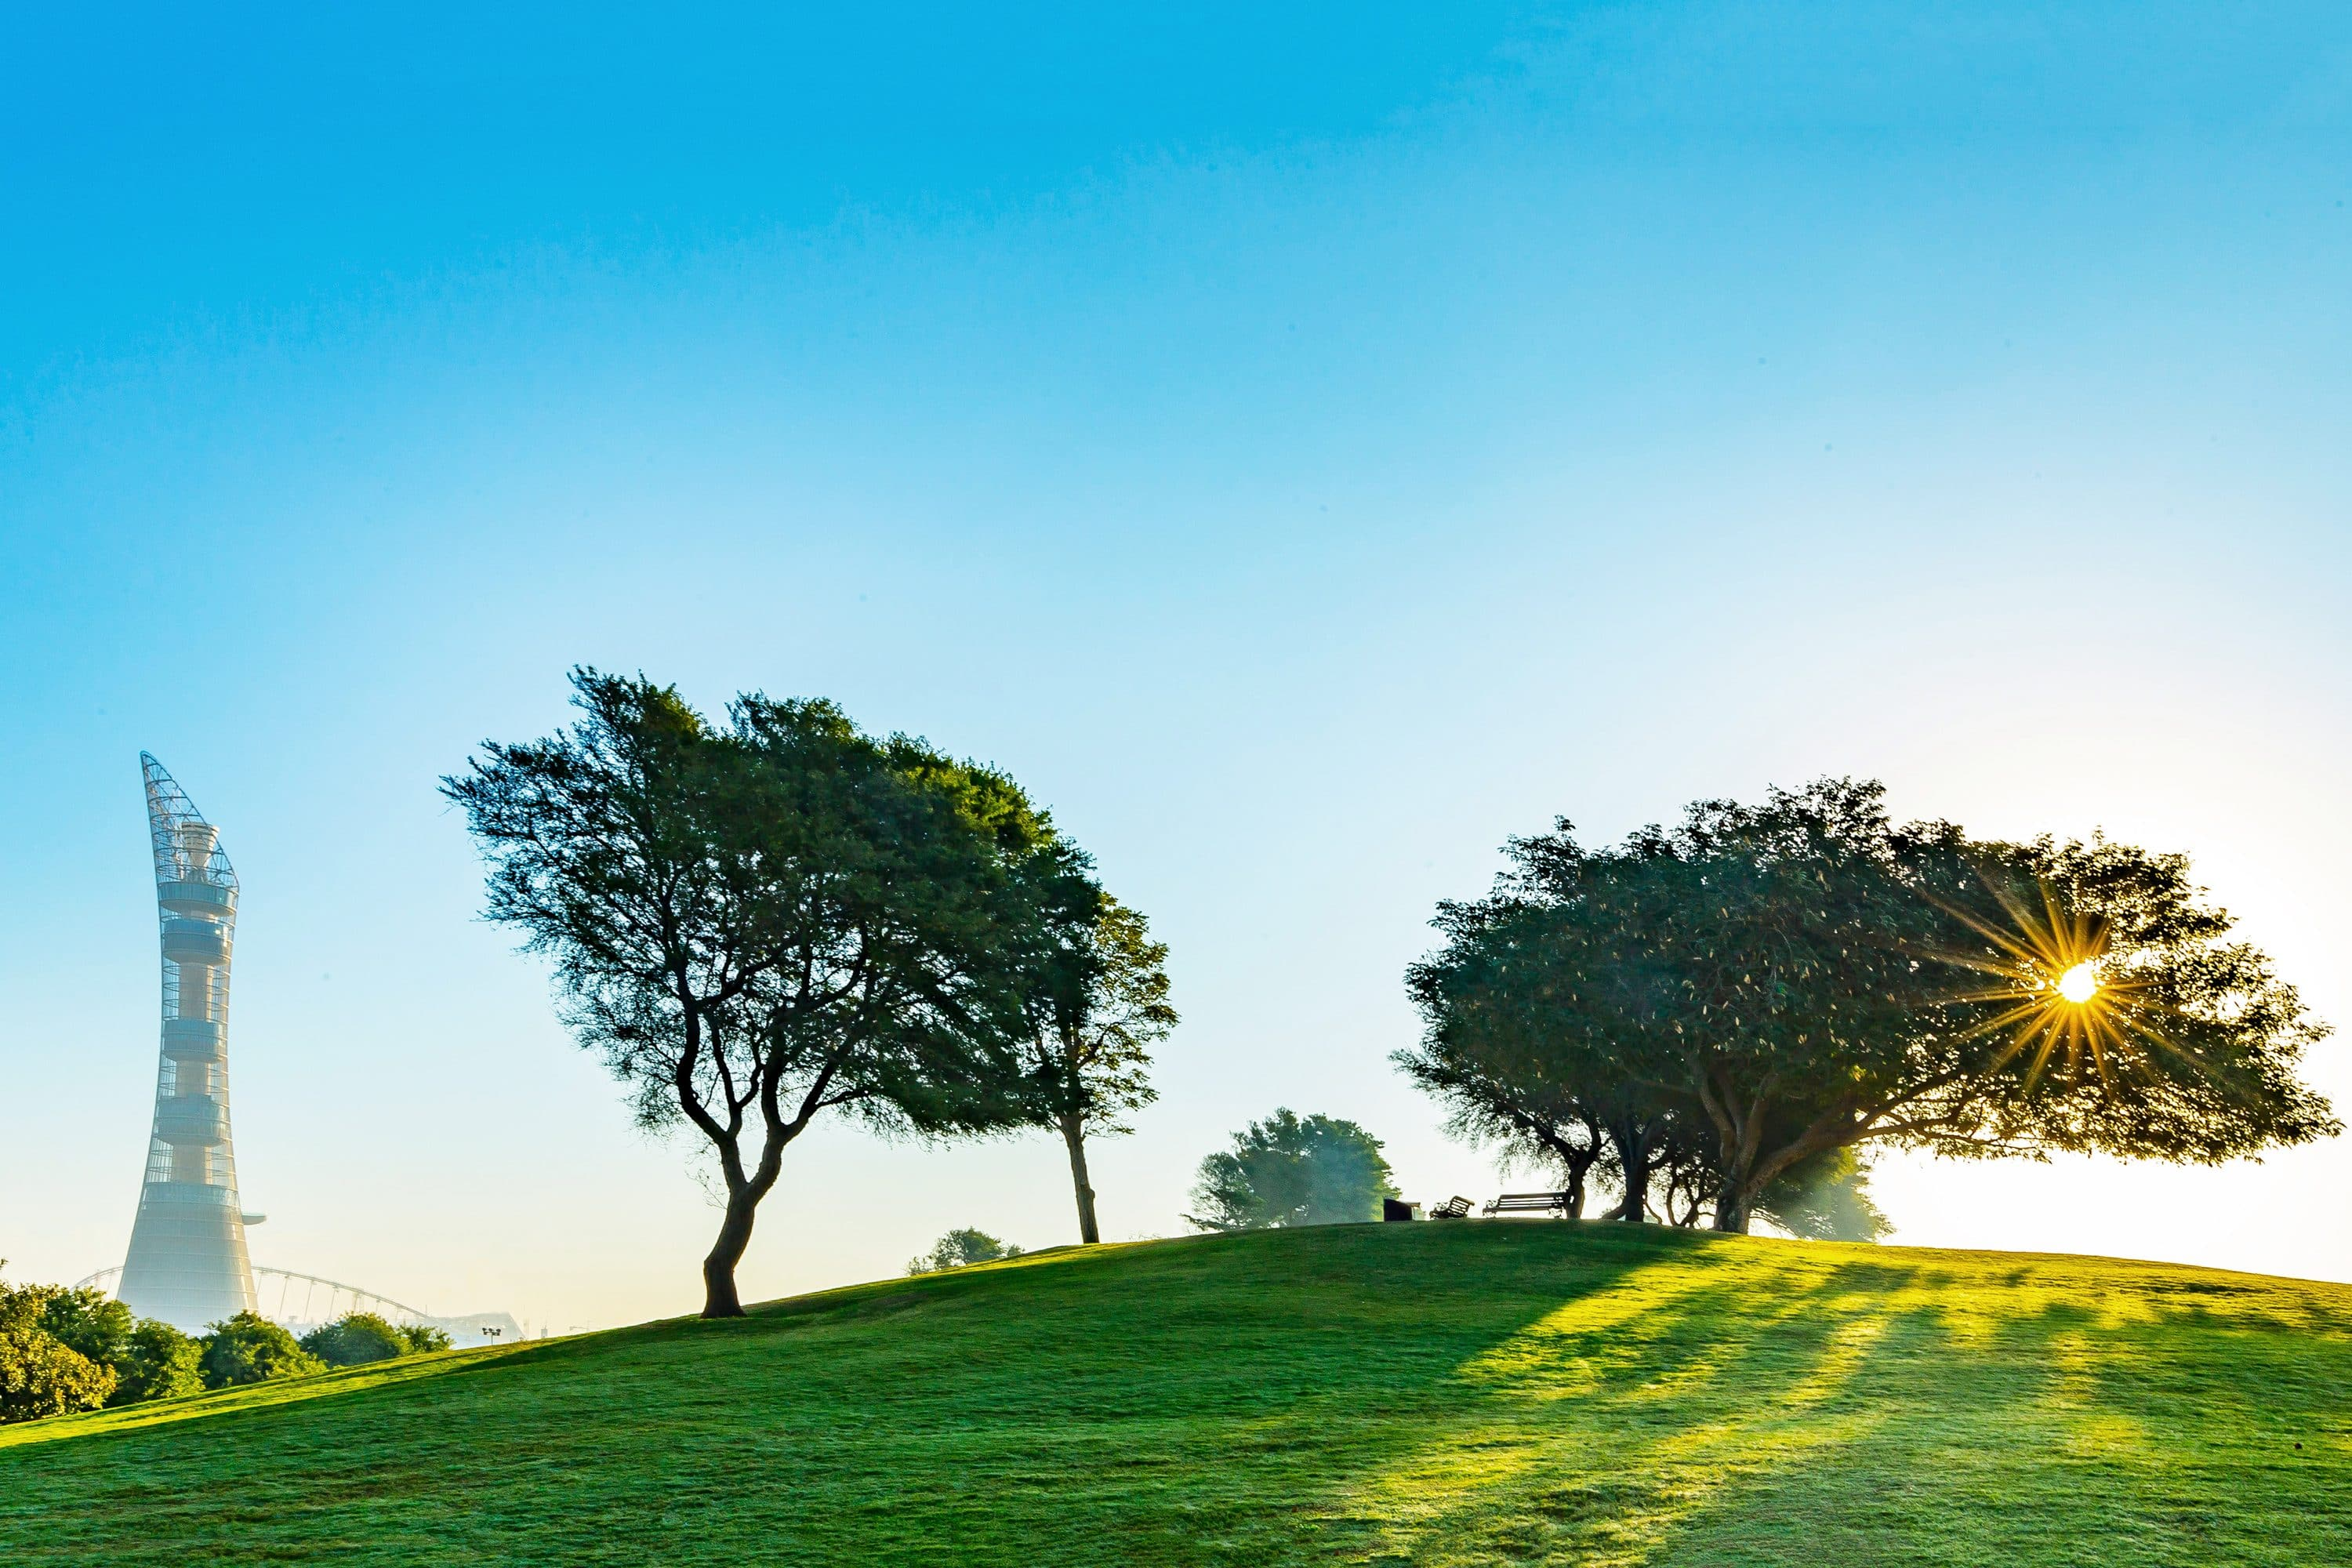 Trees atop a small hill in Aspire Park, Doha